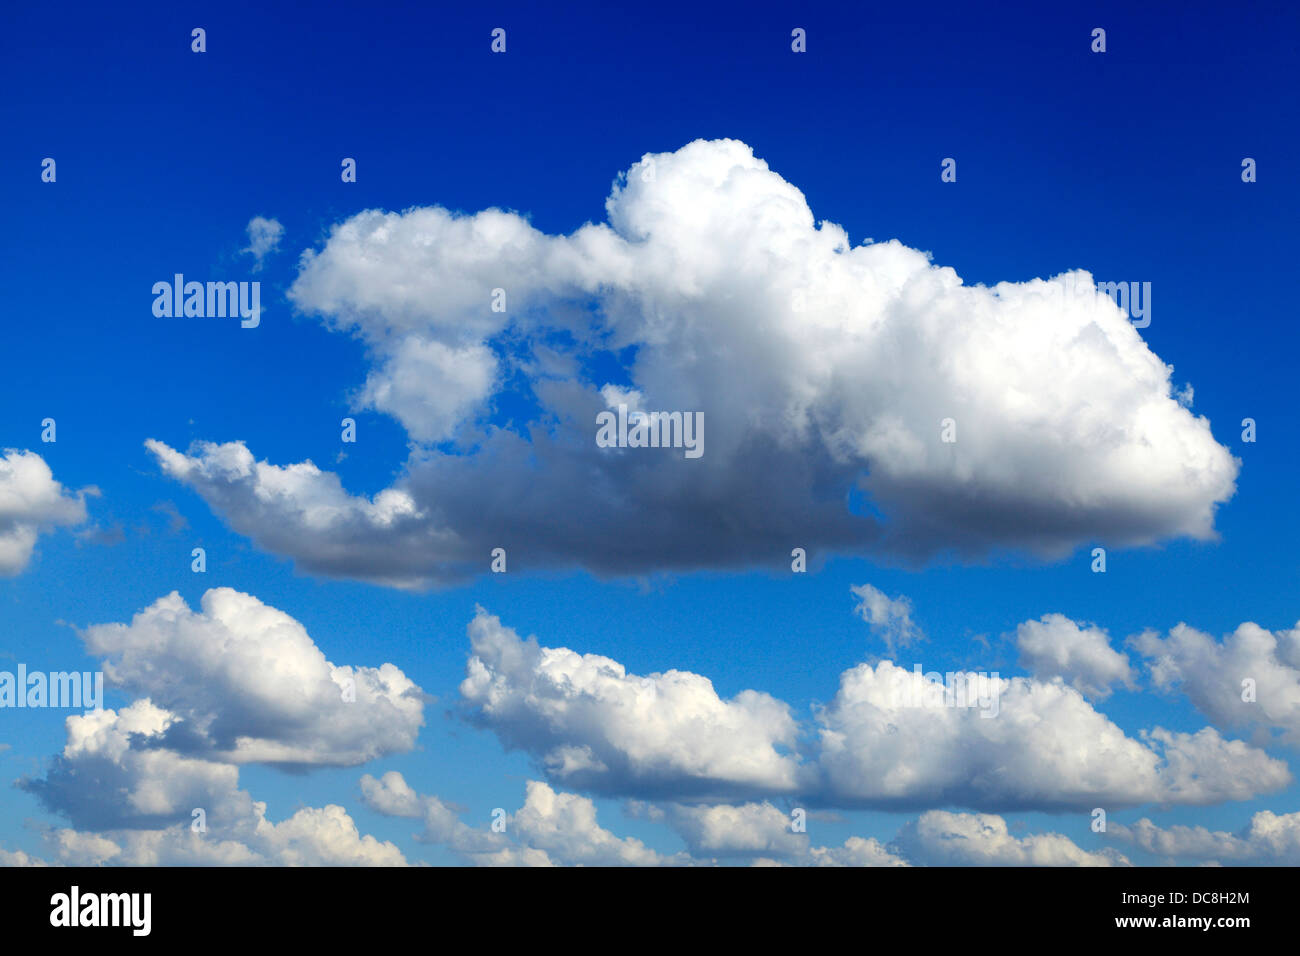 Blue Sky, white puffy cumulus clouds cloud skies meteorology weather background - Stock Image